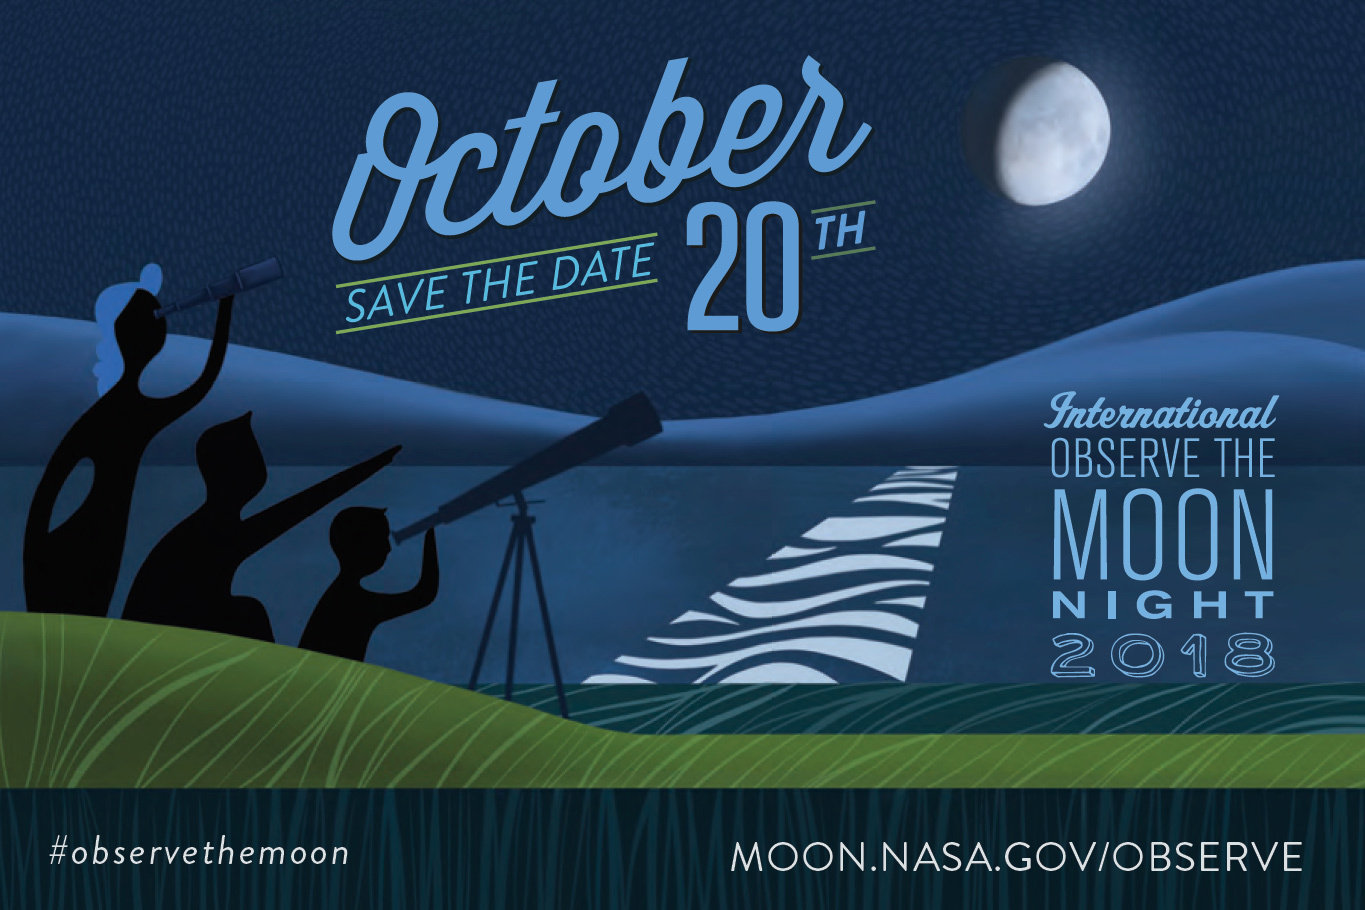 International Observe the Moon Night on Oct. 20